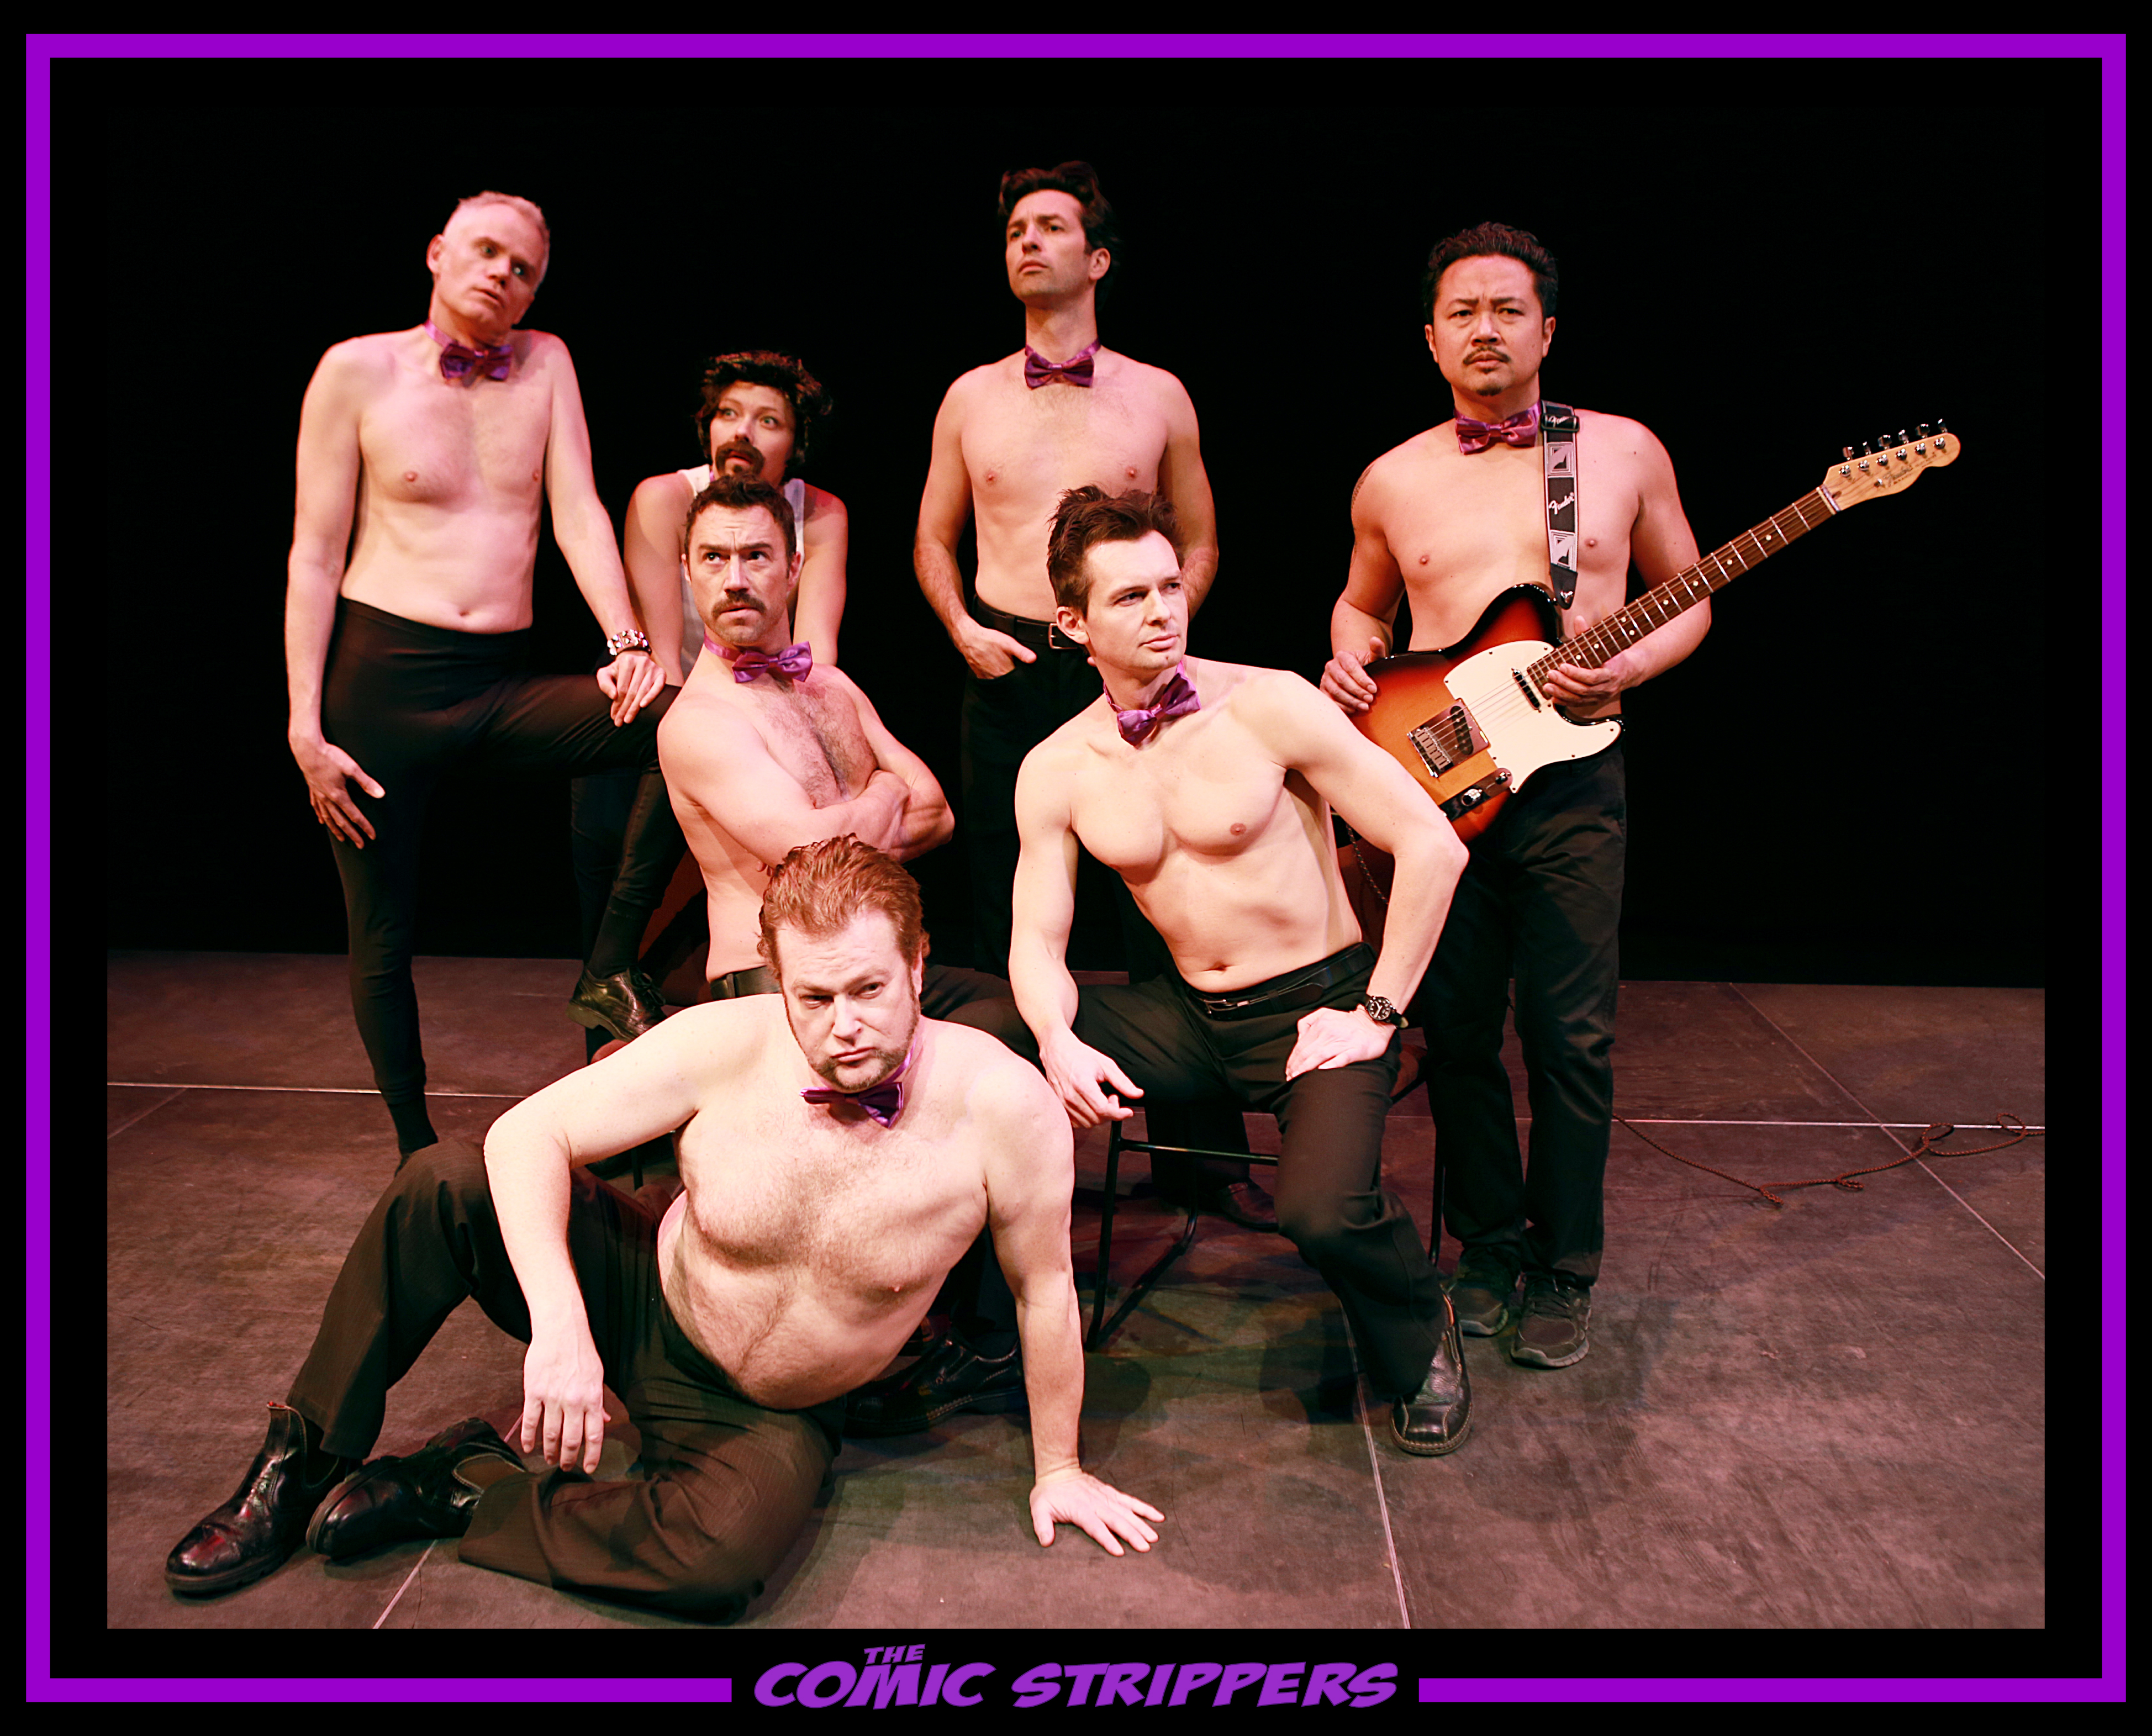 7 Comic Strippers